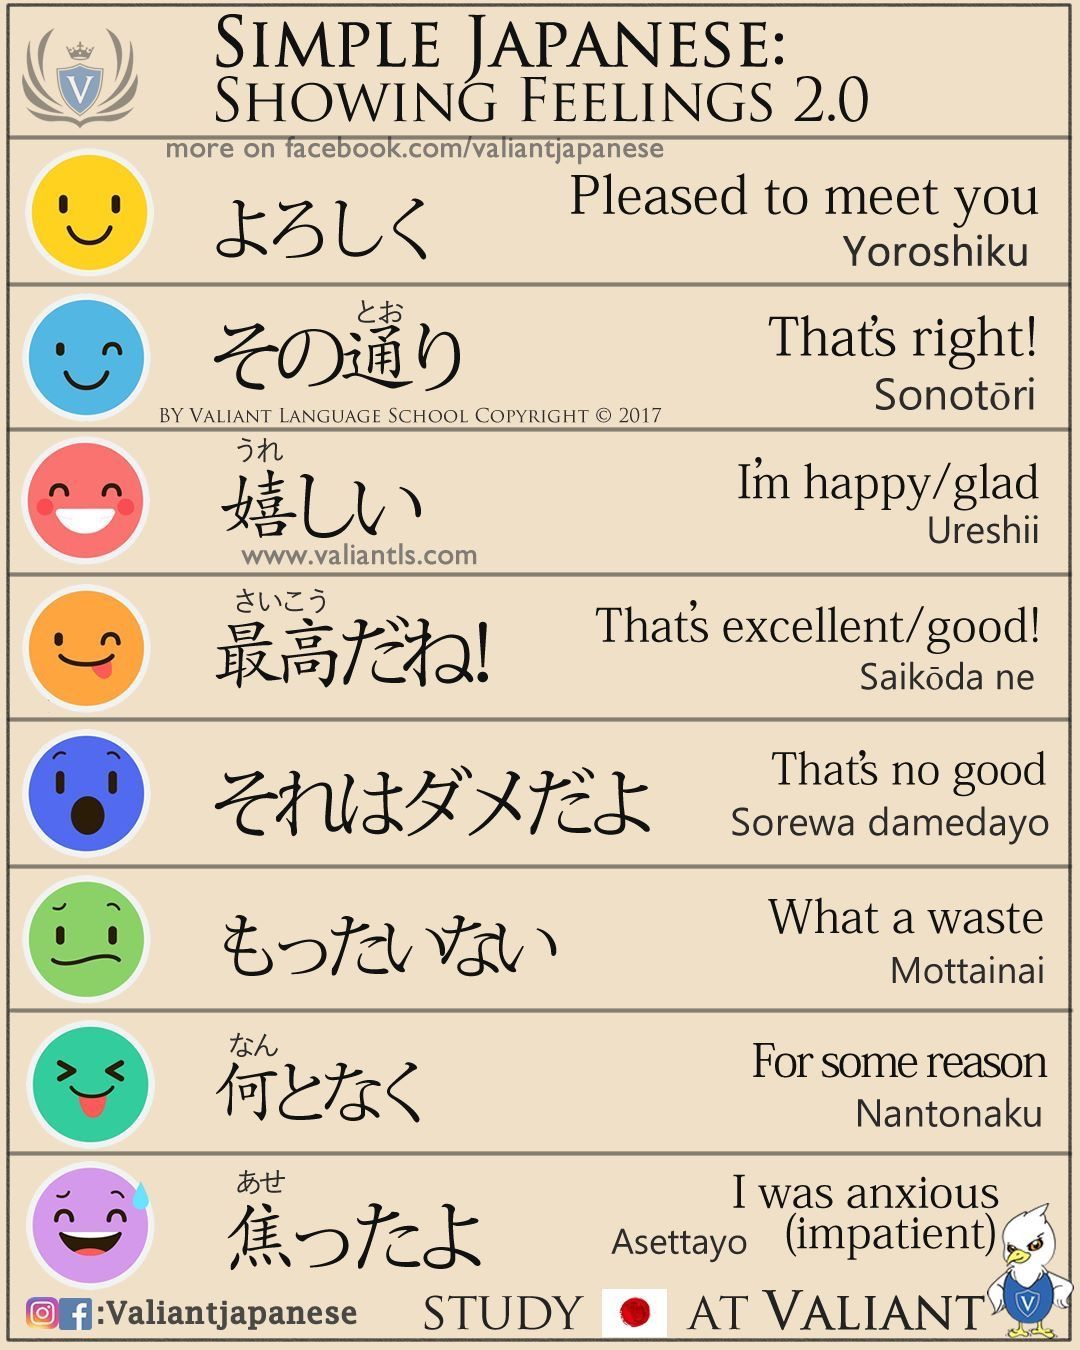 Simple Japanese Showing Feelings 2 0